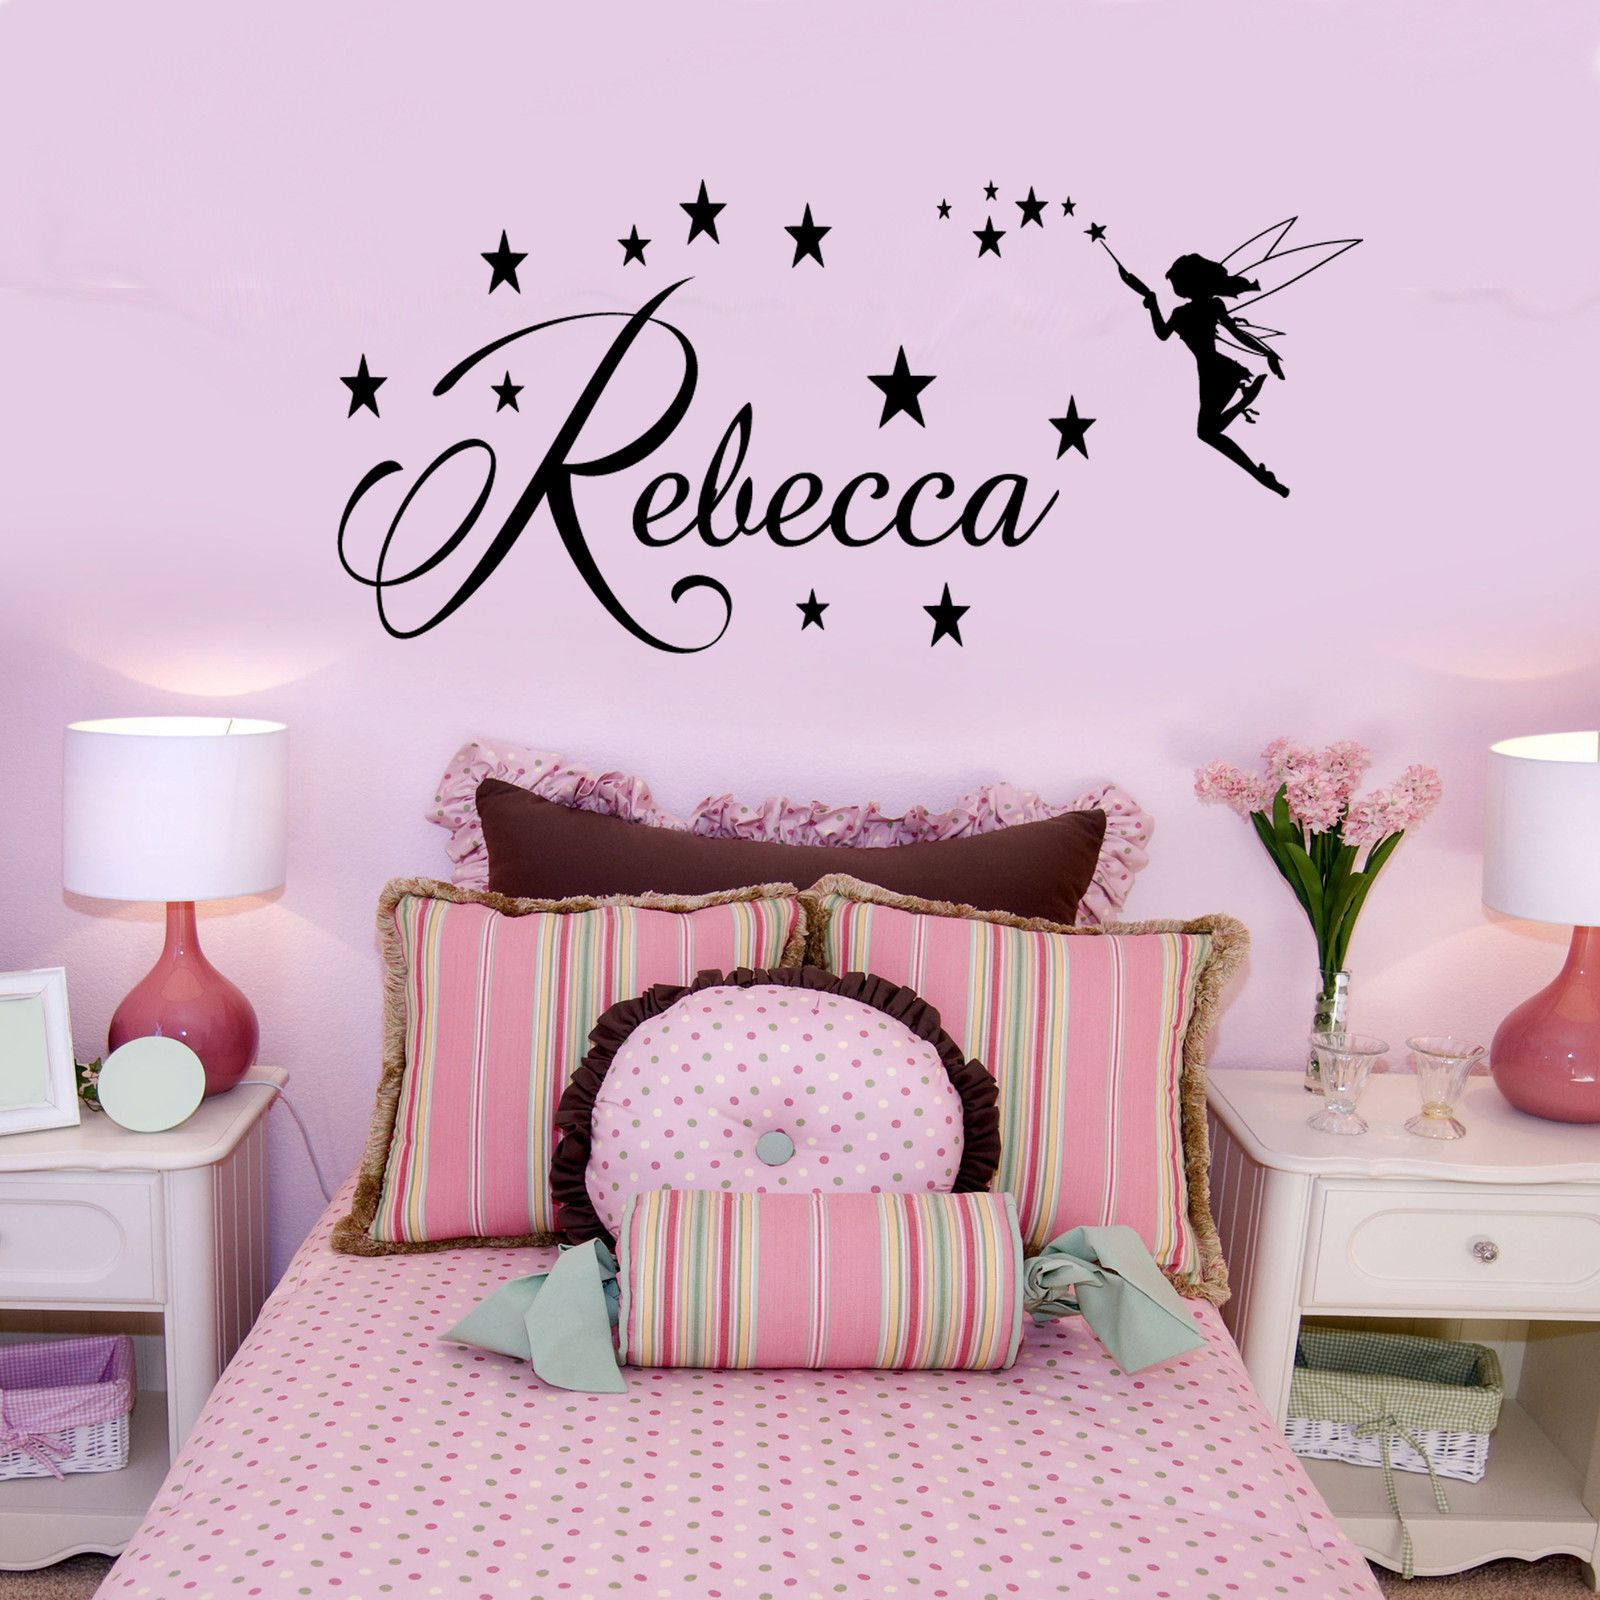 Personalised fairy name wall sticker stars dust kids girls bedroom personalised fairy name wall sticker stars dust kids girls bedroom vinyl decal ebay amipublicfo Choice Image